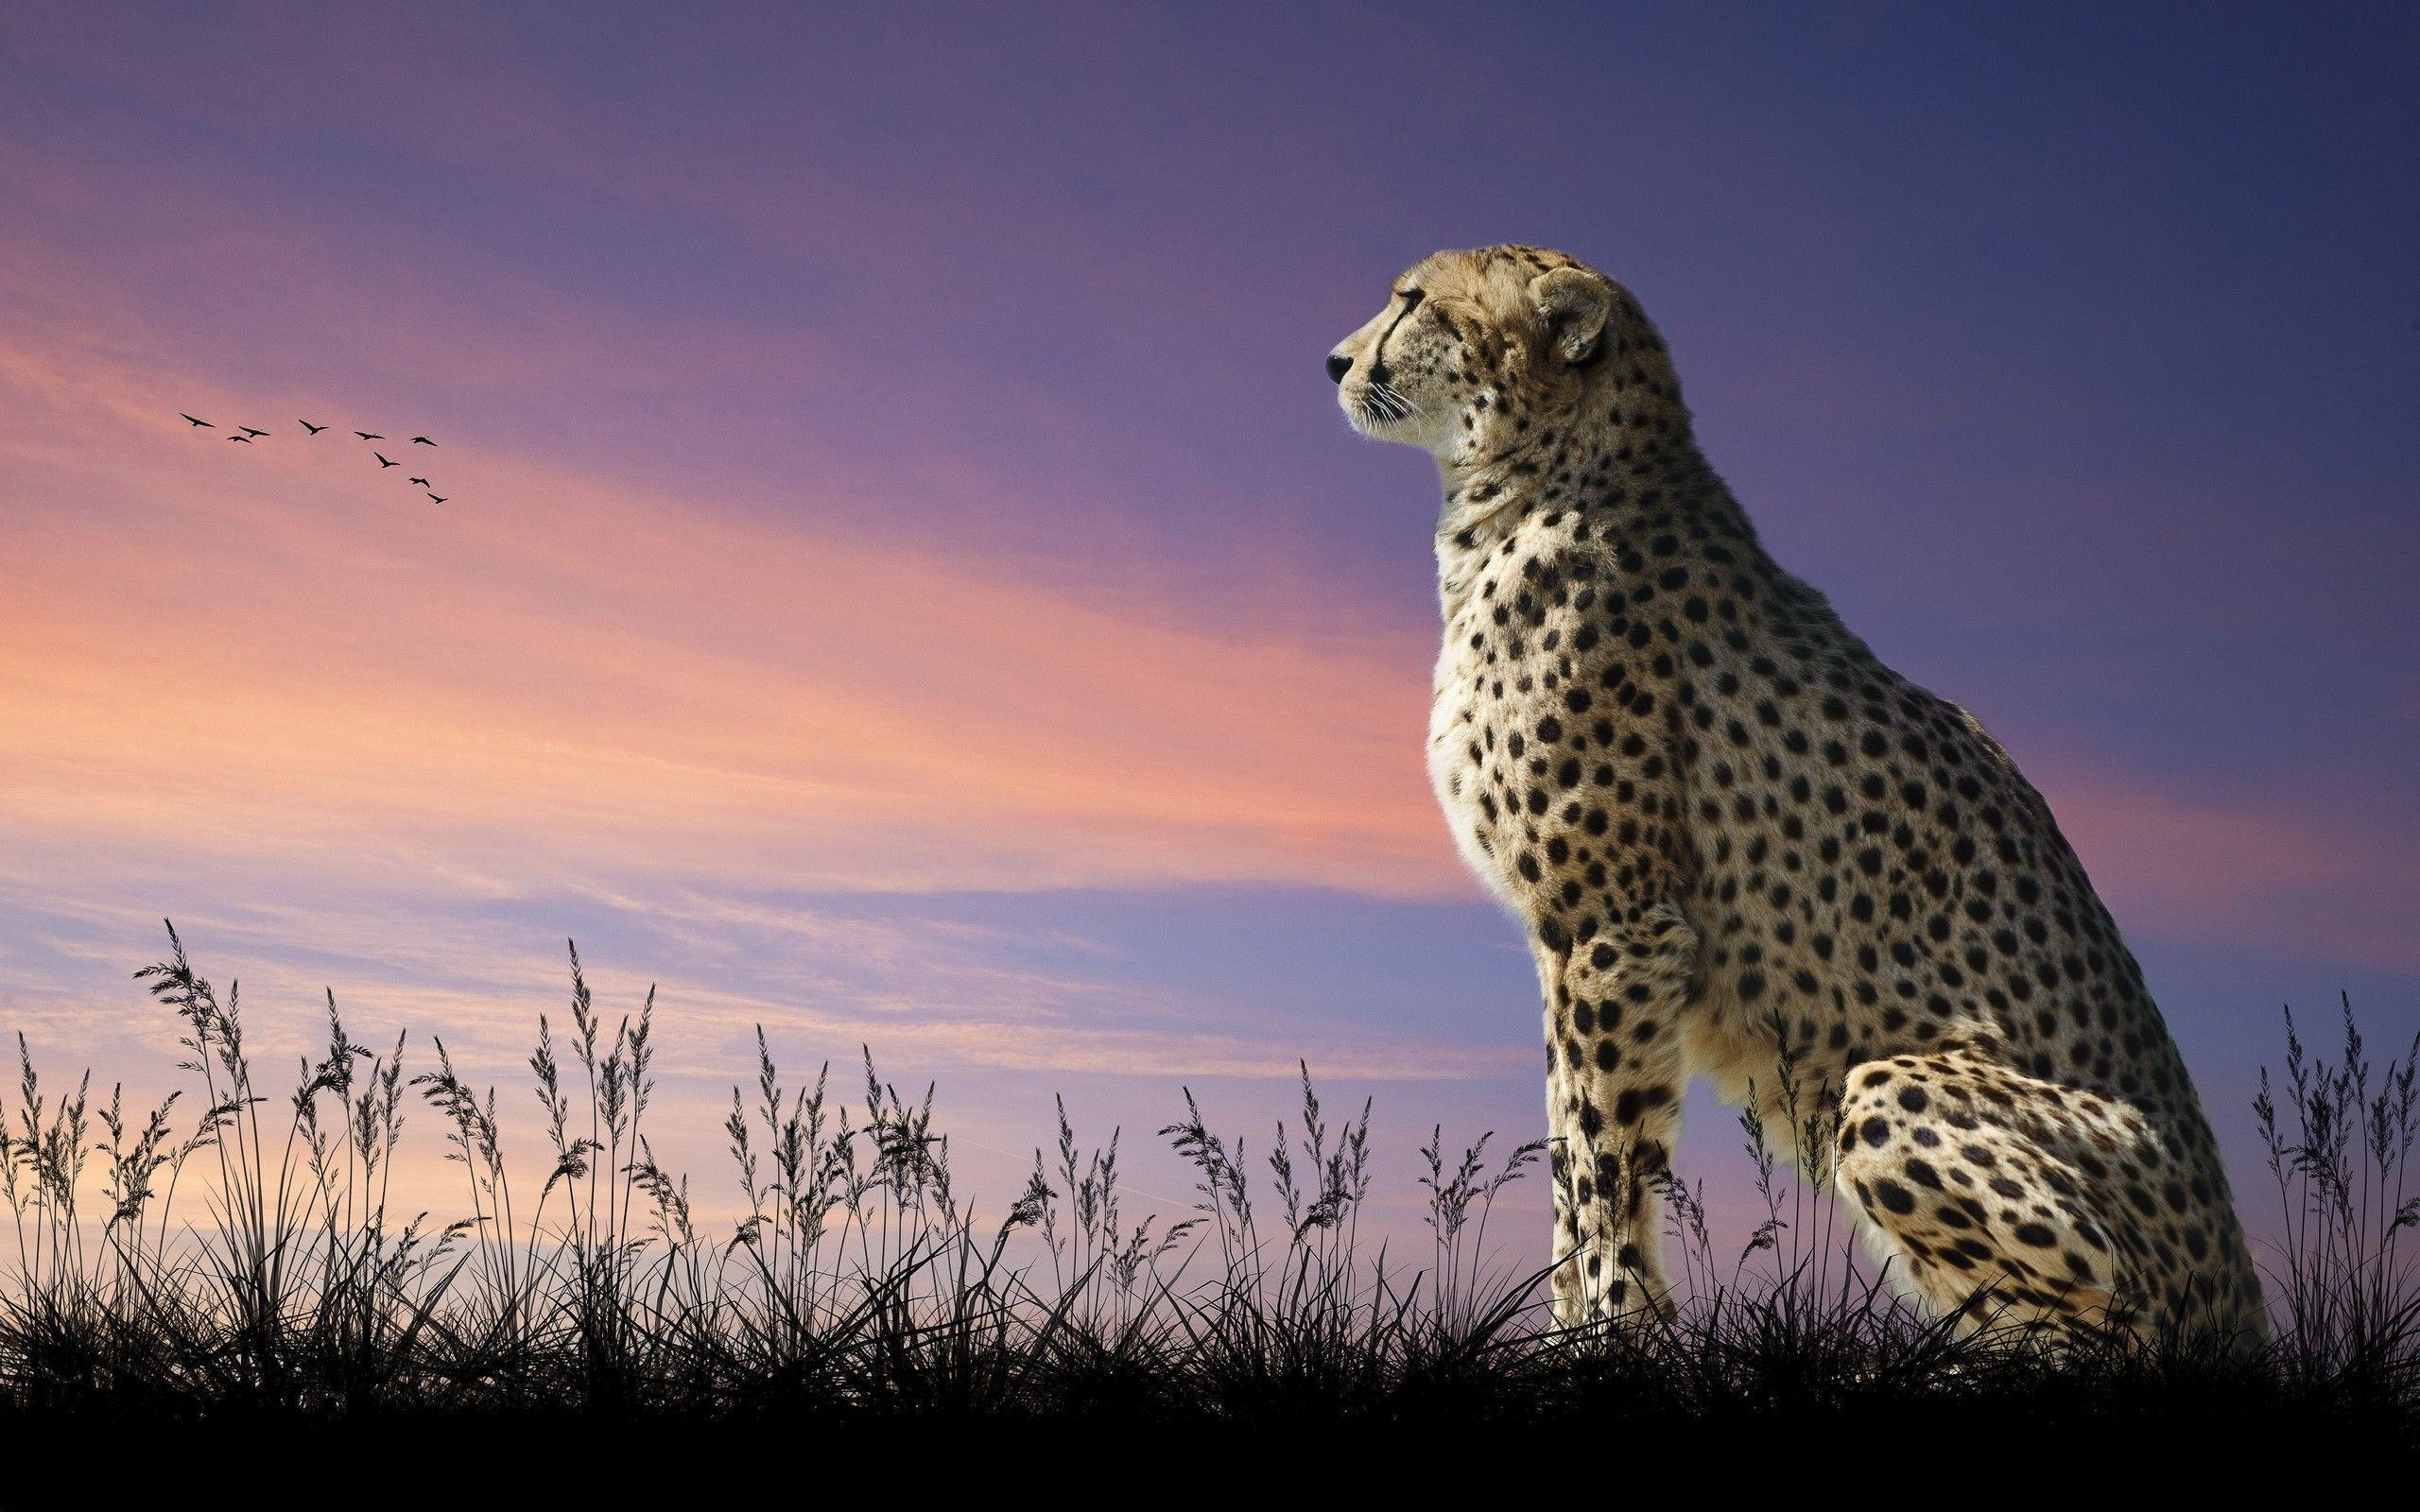 Cheetah wallpaper | 2560x1600 | 98339 | WallpaperUP